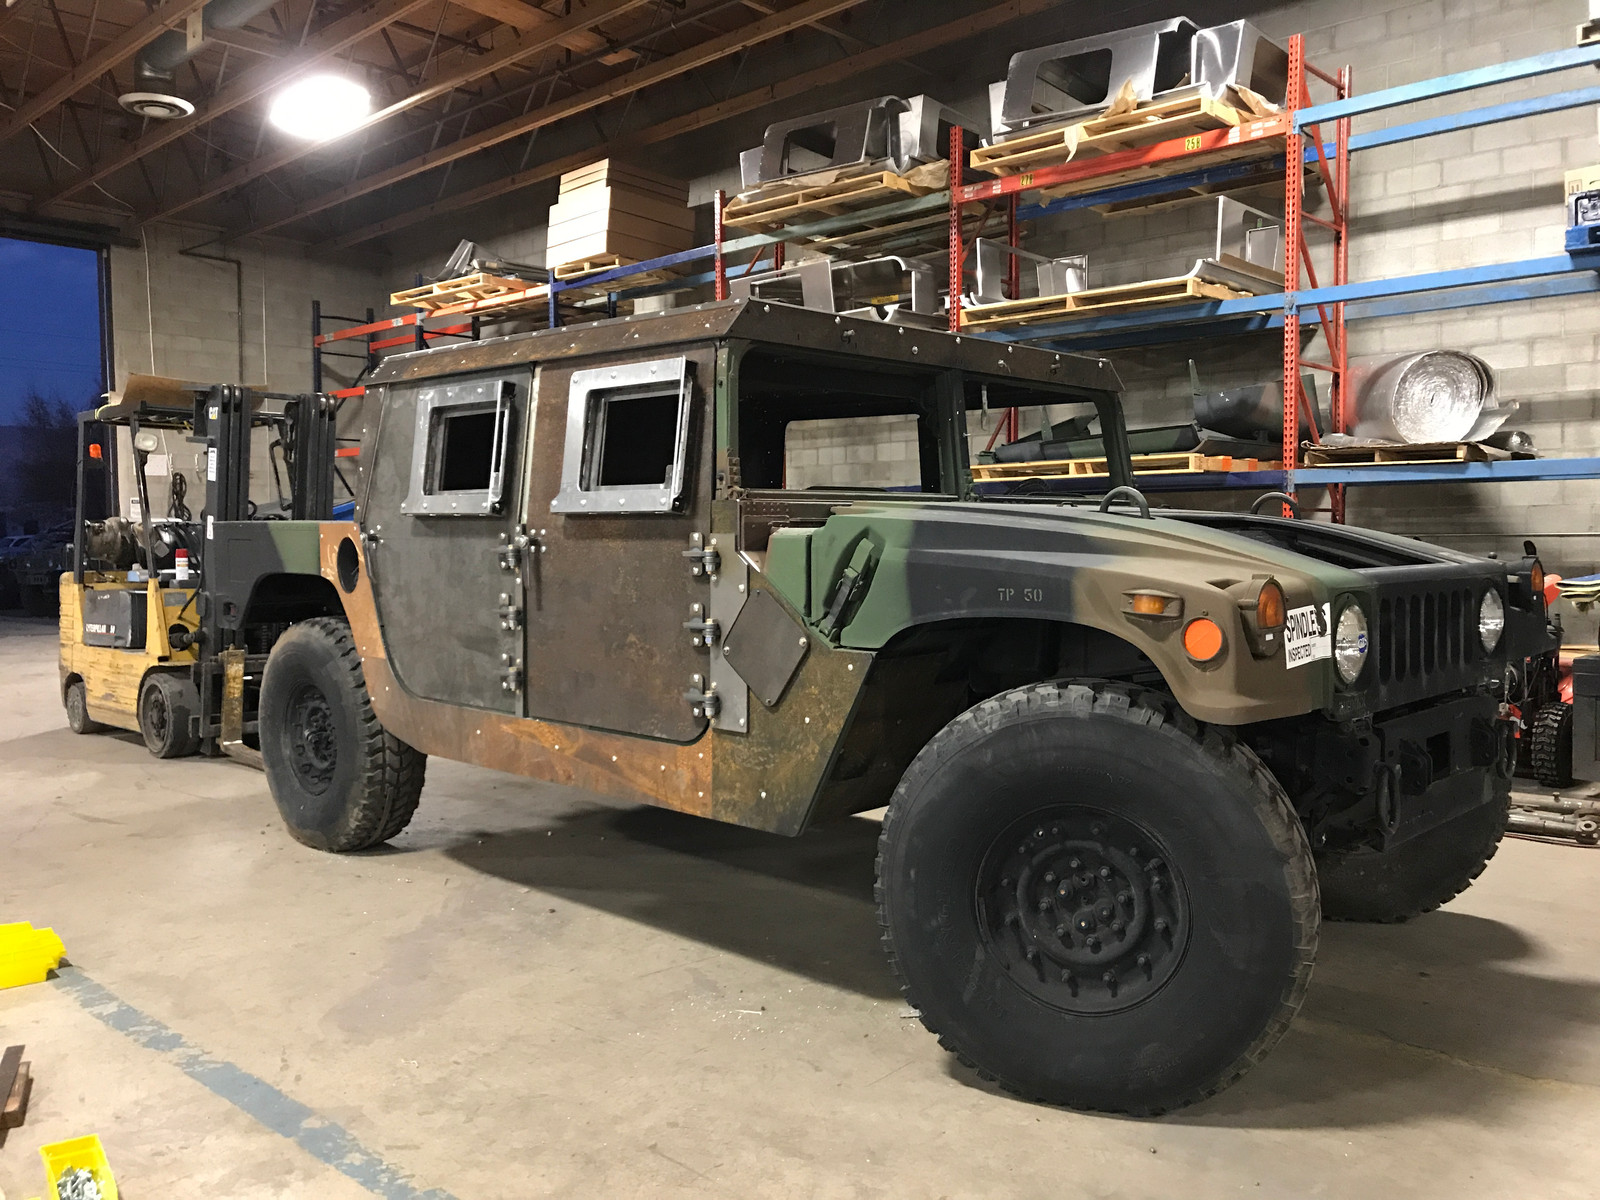 Plan B Supply offers Hard tops, Hard doors, Slant Back, Wagon Back kits  Custom designed to fit the Humvee® military vehicle are available for sale.